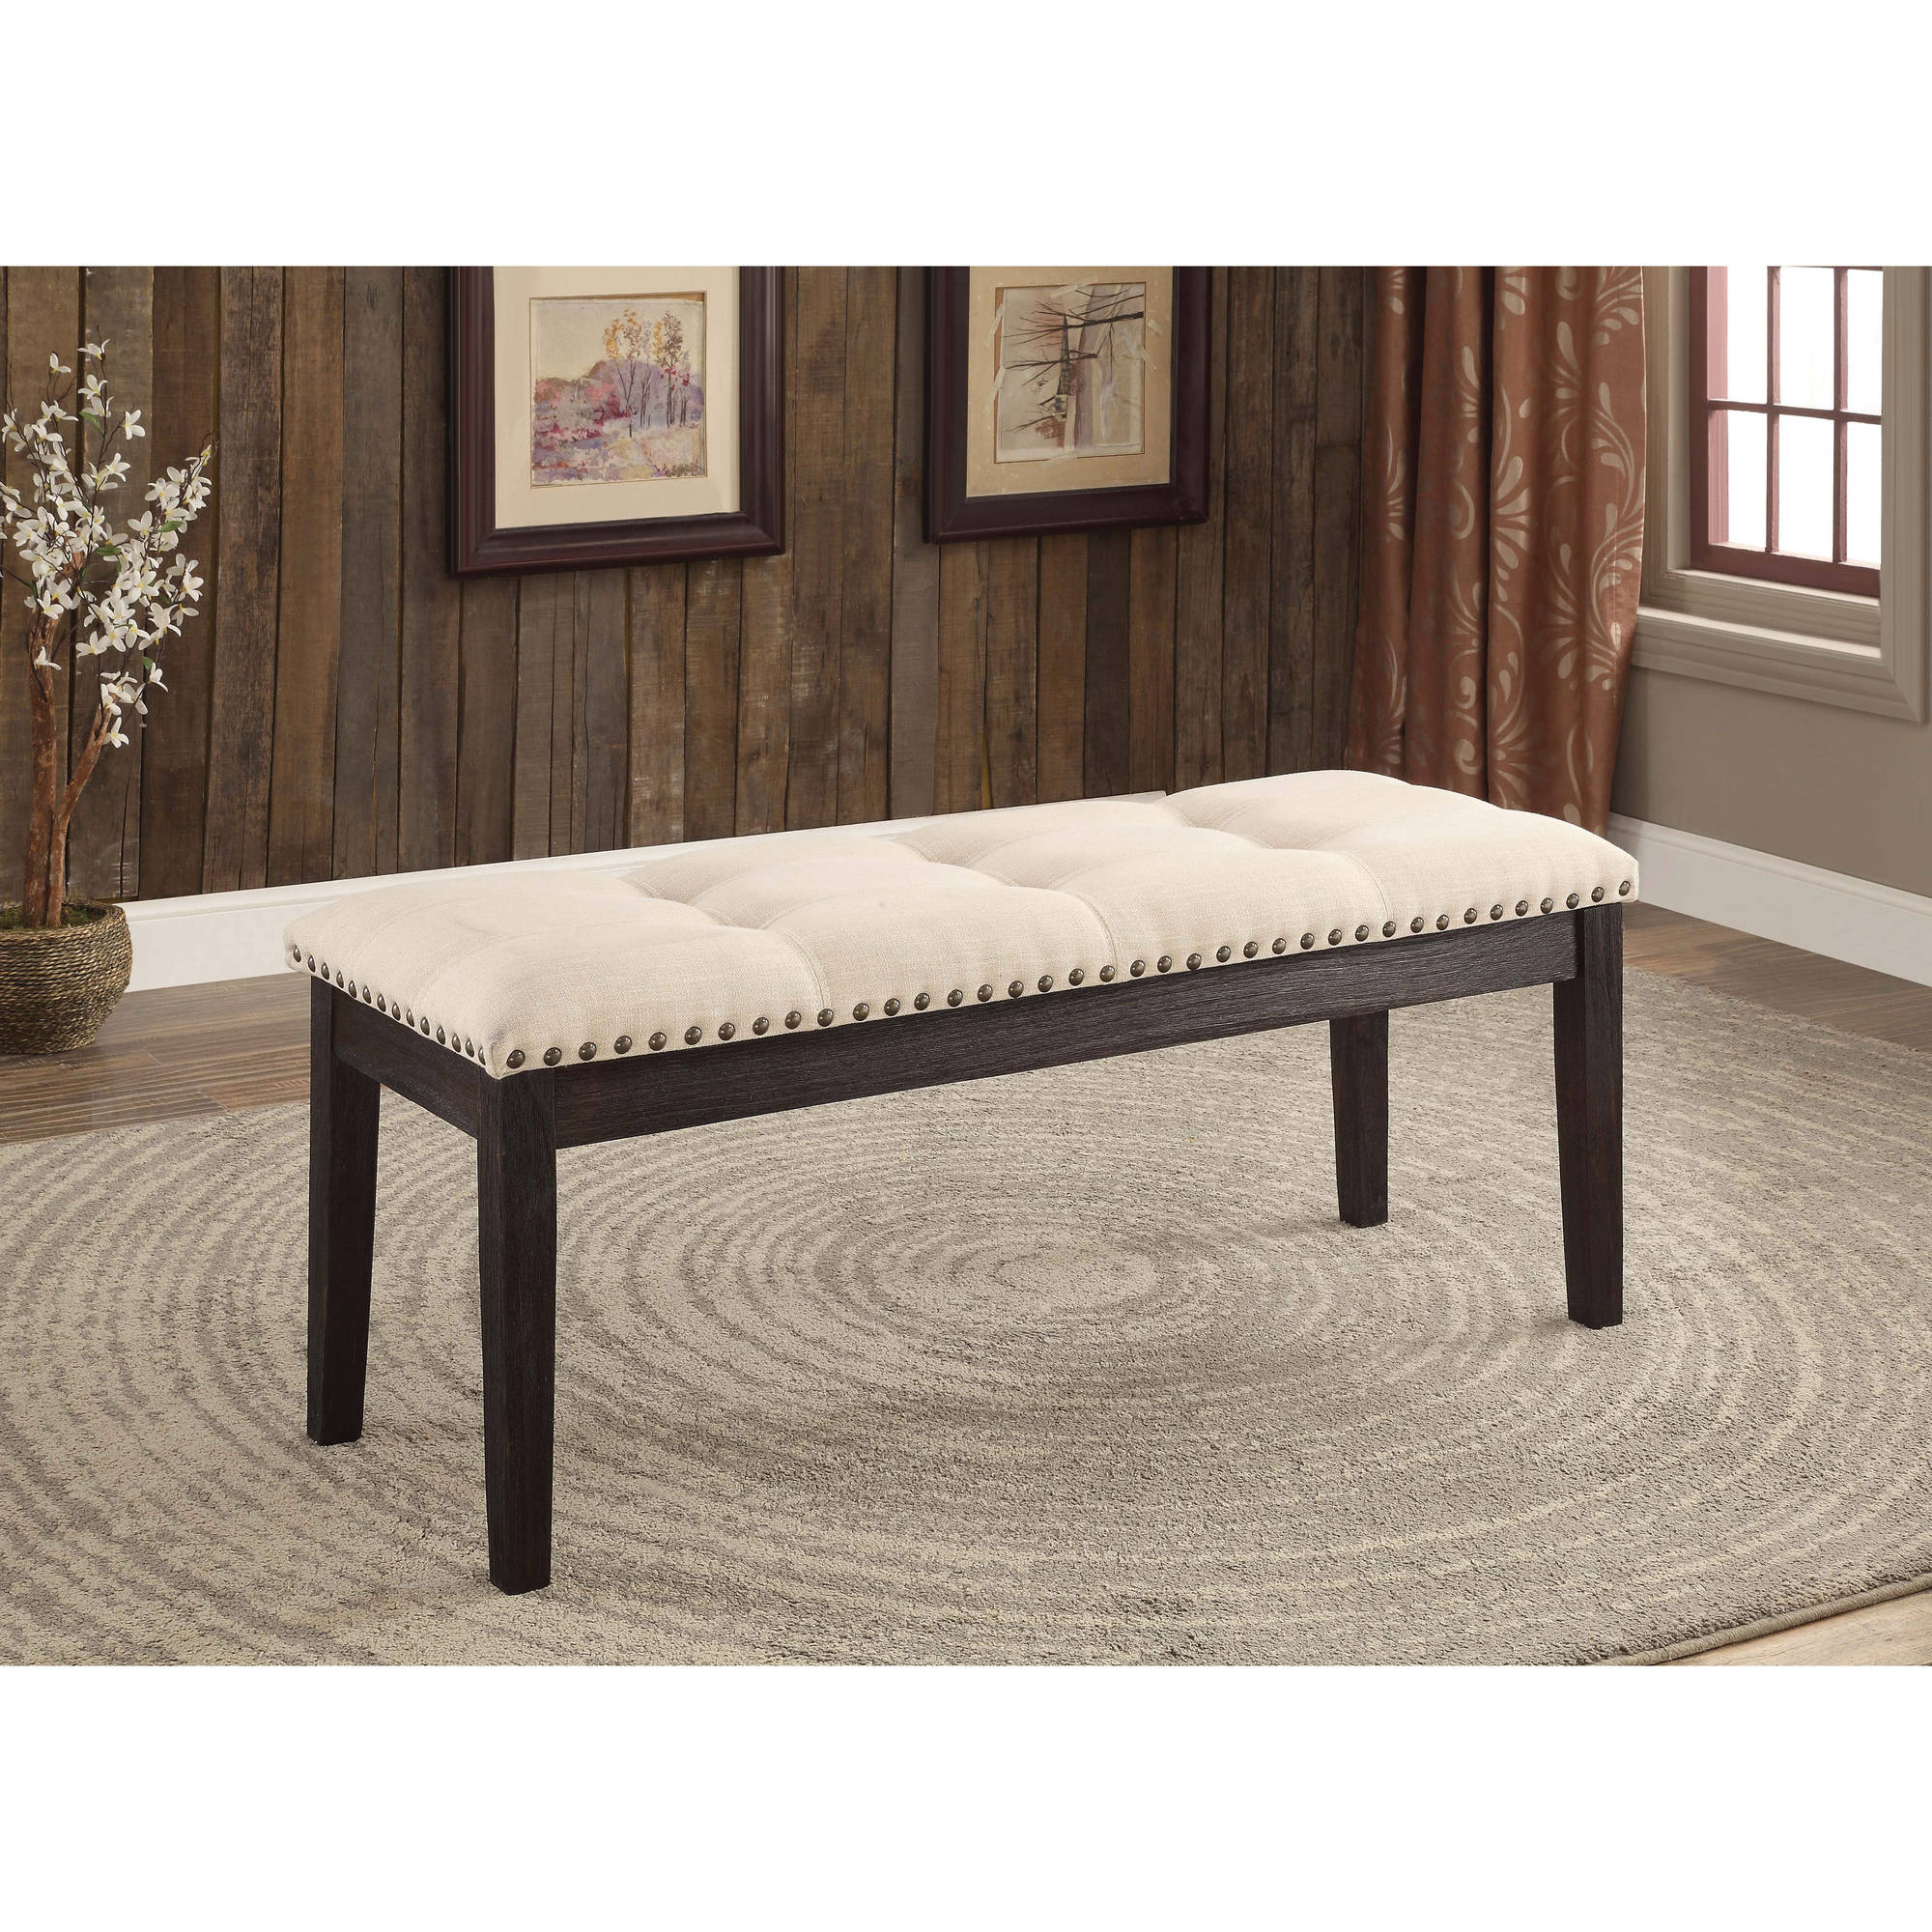 Furniture of America Roisin Contemporary Dining Bench, Ivory